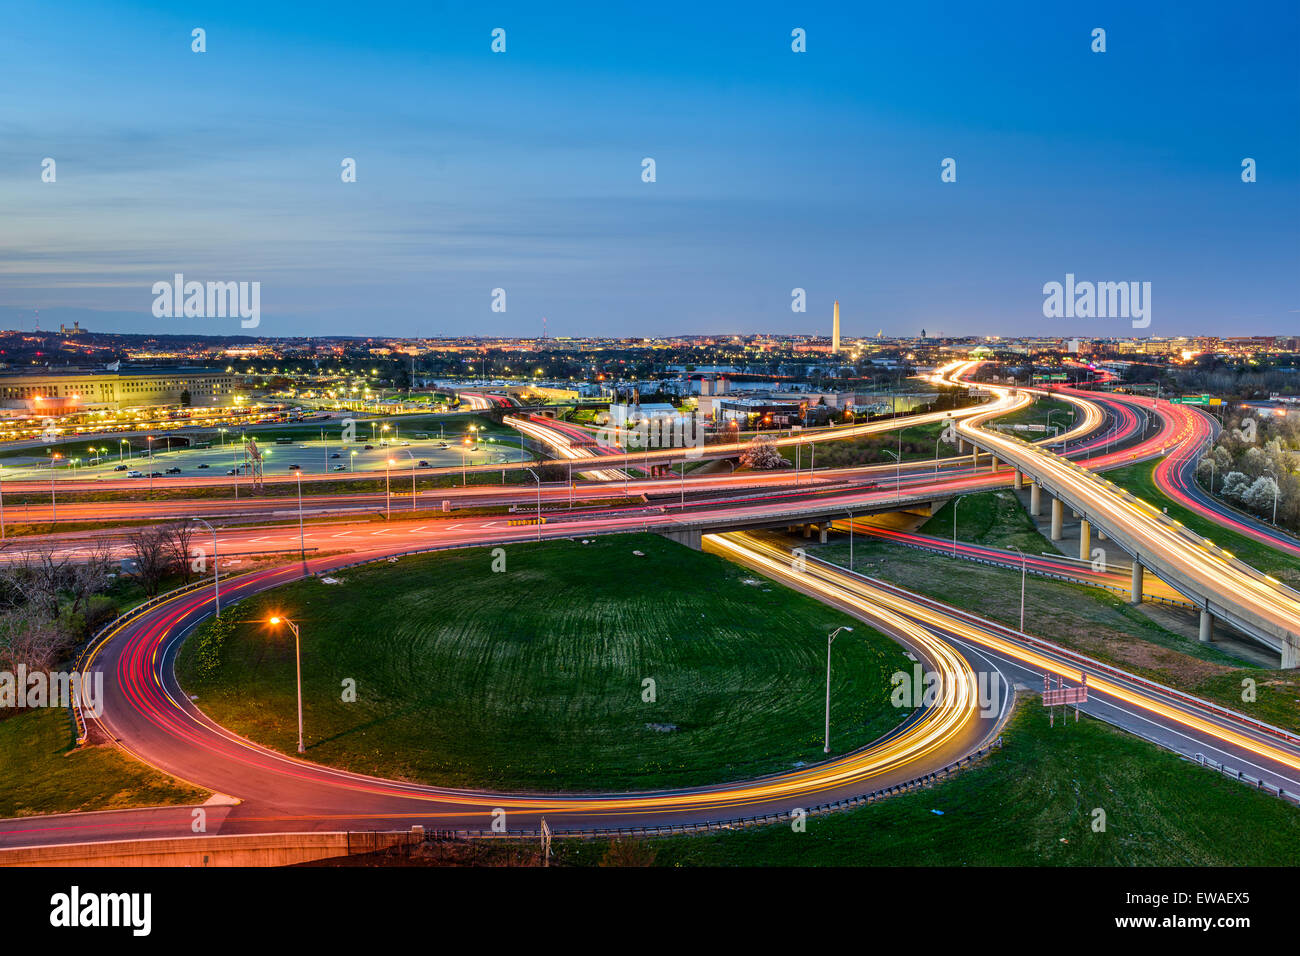 Washington, D.C. skyline with highways and monuments. - Stock Image